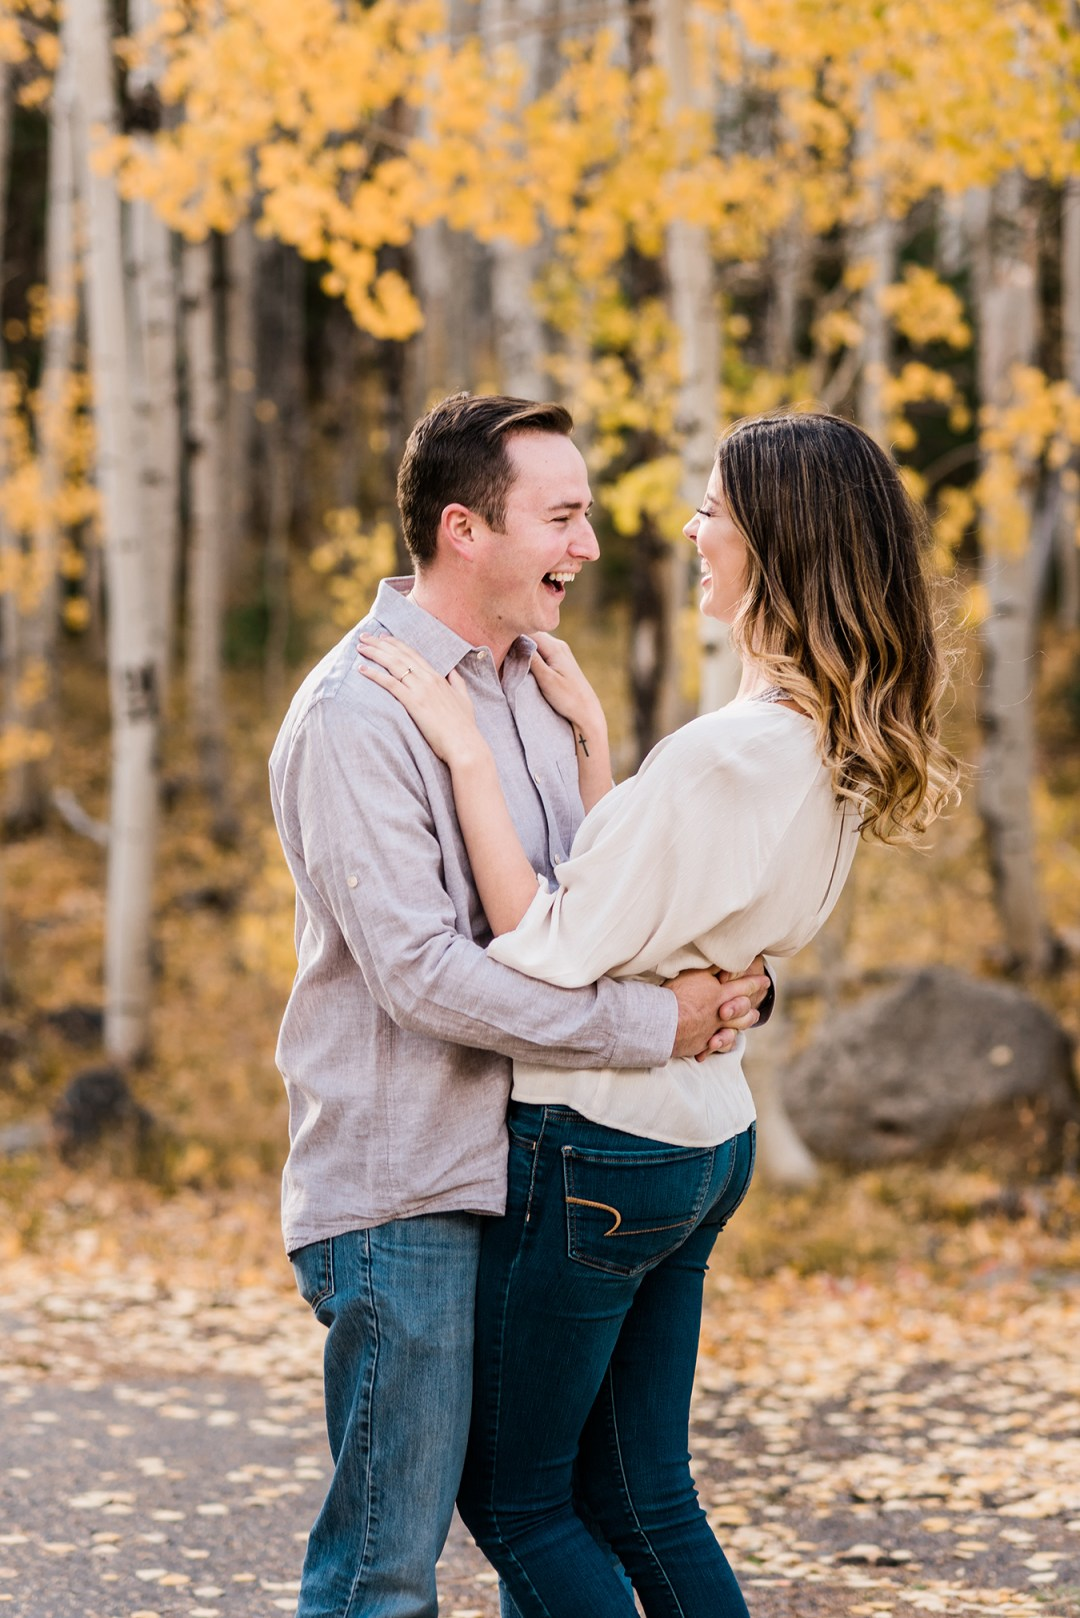 Molly and Connor's Color Sunday engagement session on the Mesa   amanda.matilda.photographyMolly and Connor's Color Sunday engagement session on the Mesa   amanda.matilda.photography